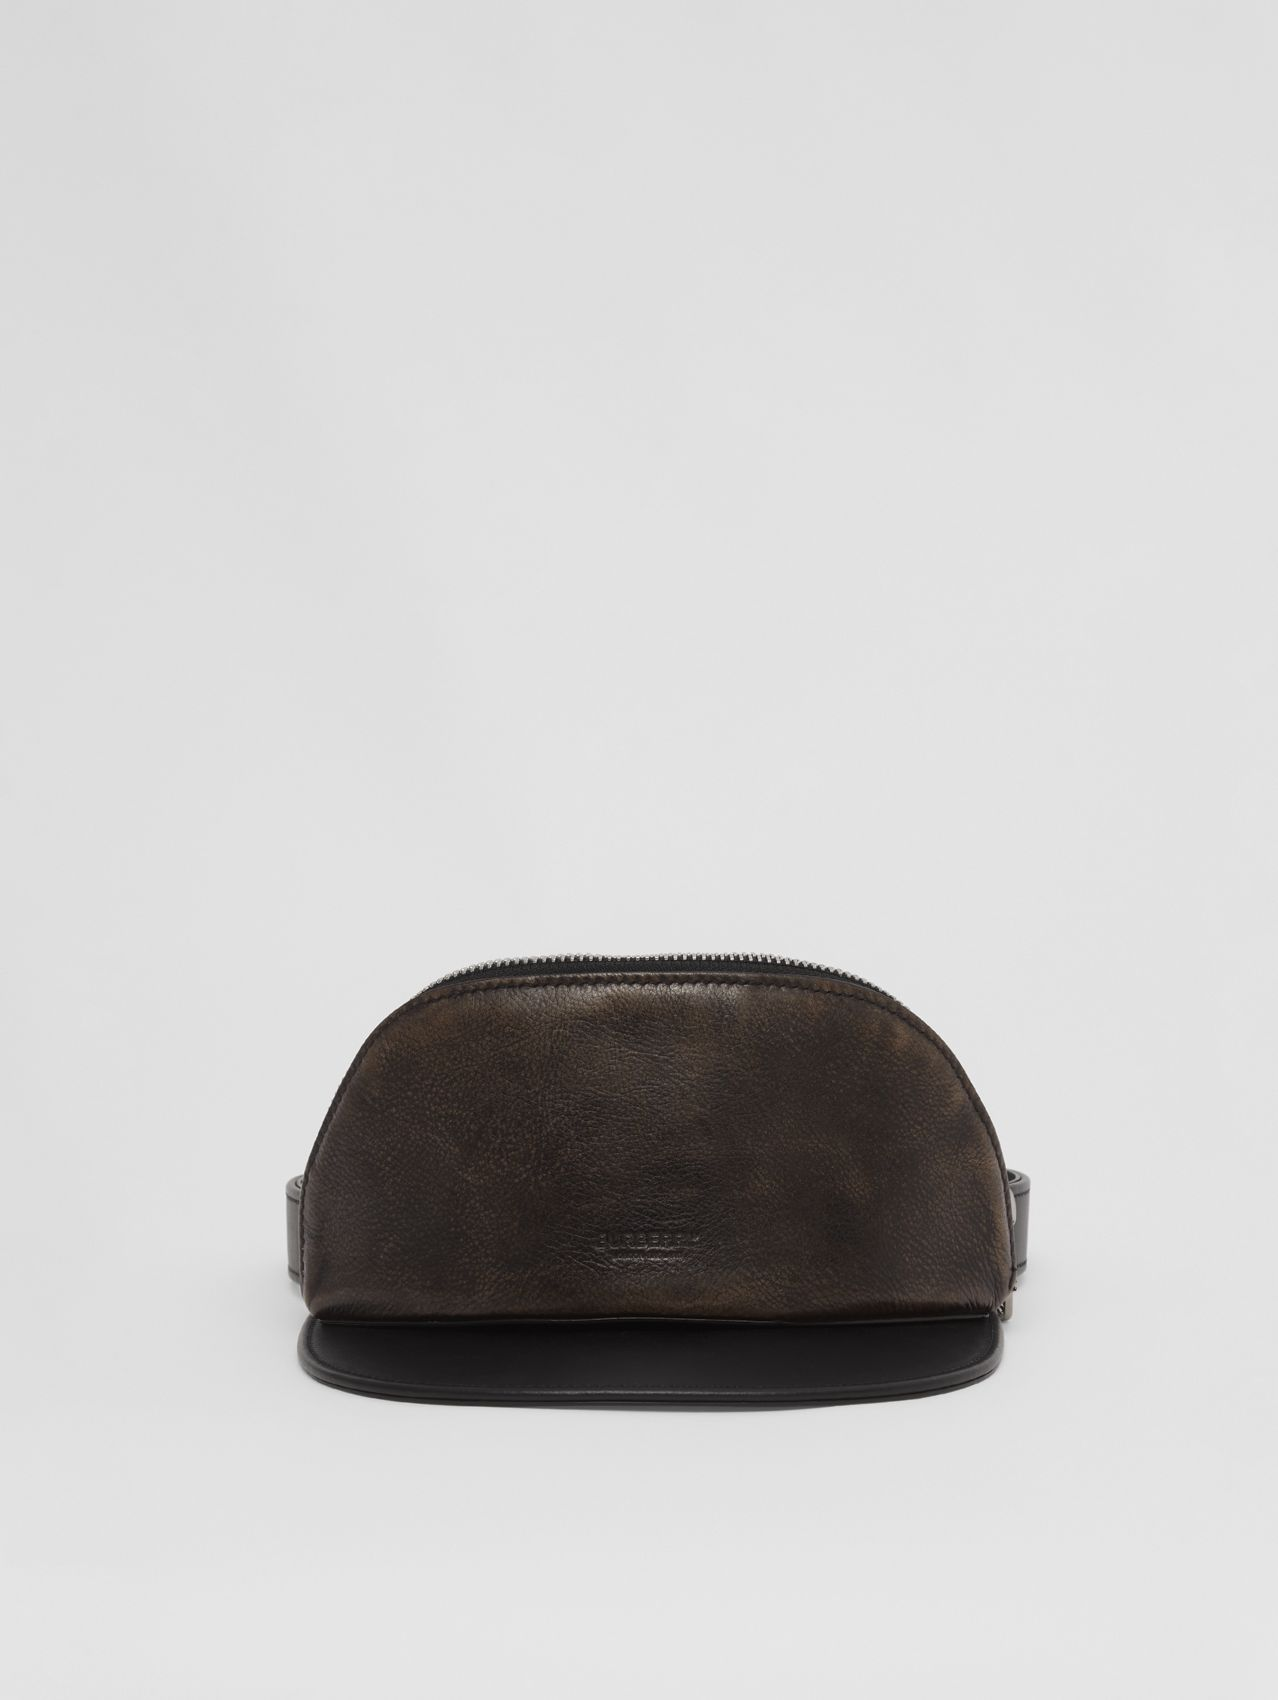 Leather Visor with Detachable Zip Pocket in Black